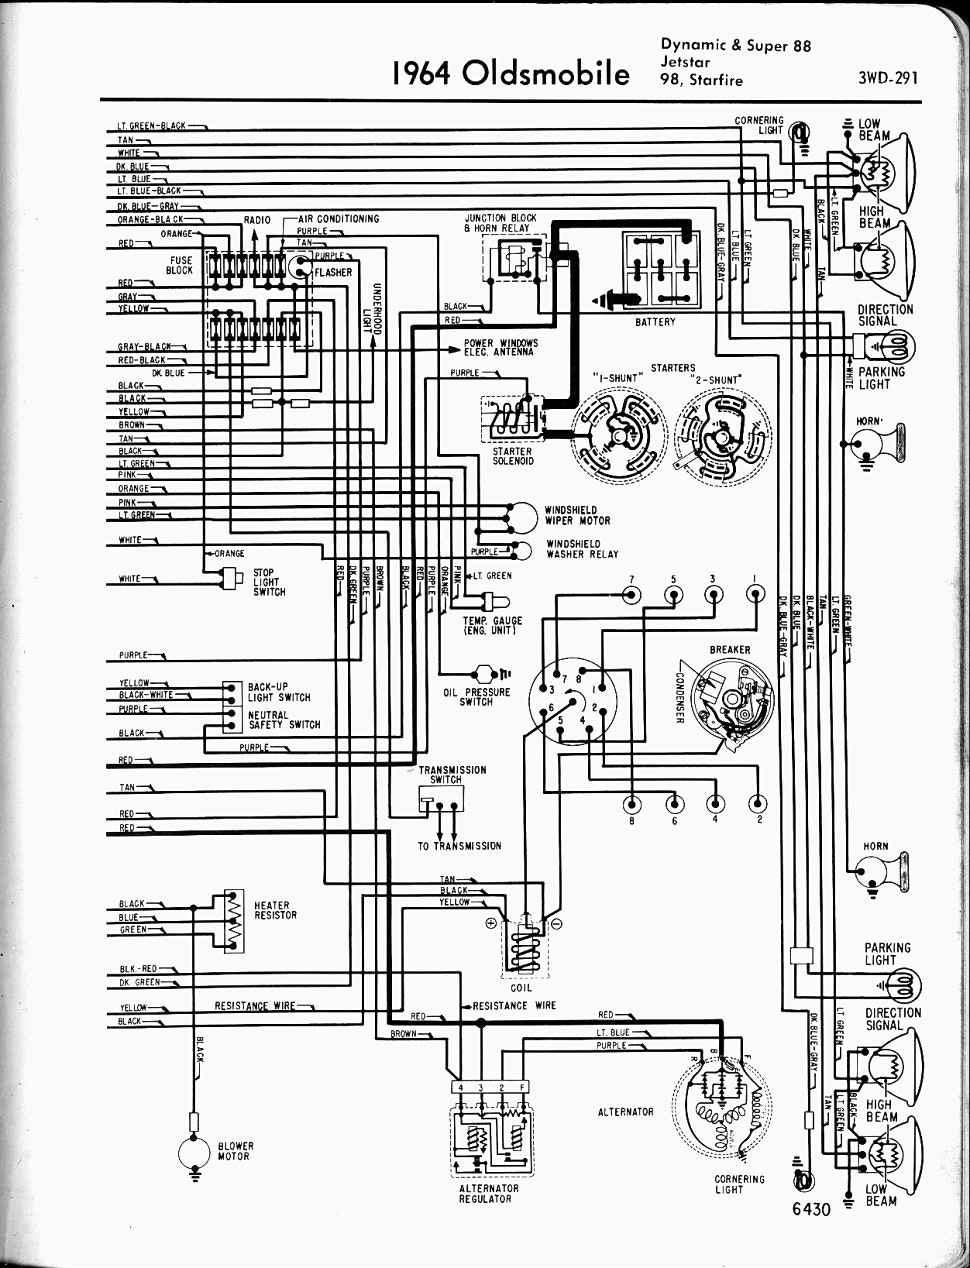 95 Acura Legend Radiator Diagram Printable Wiring Diagram Schematic